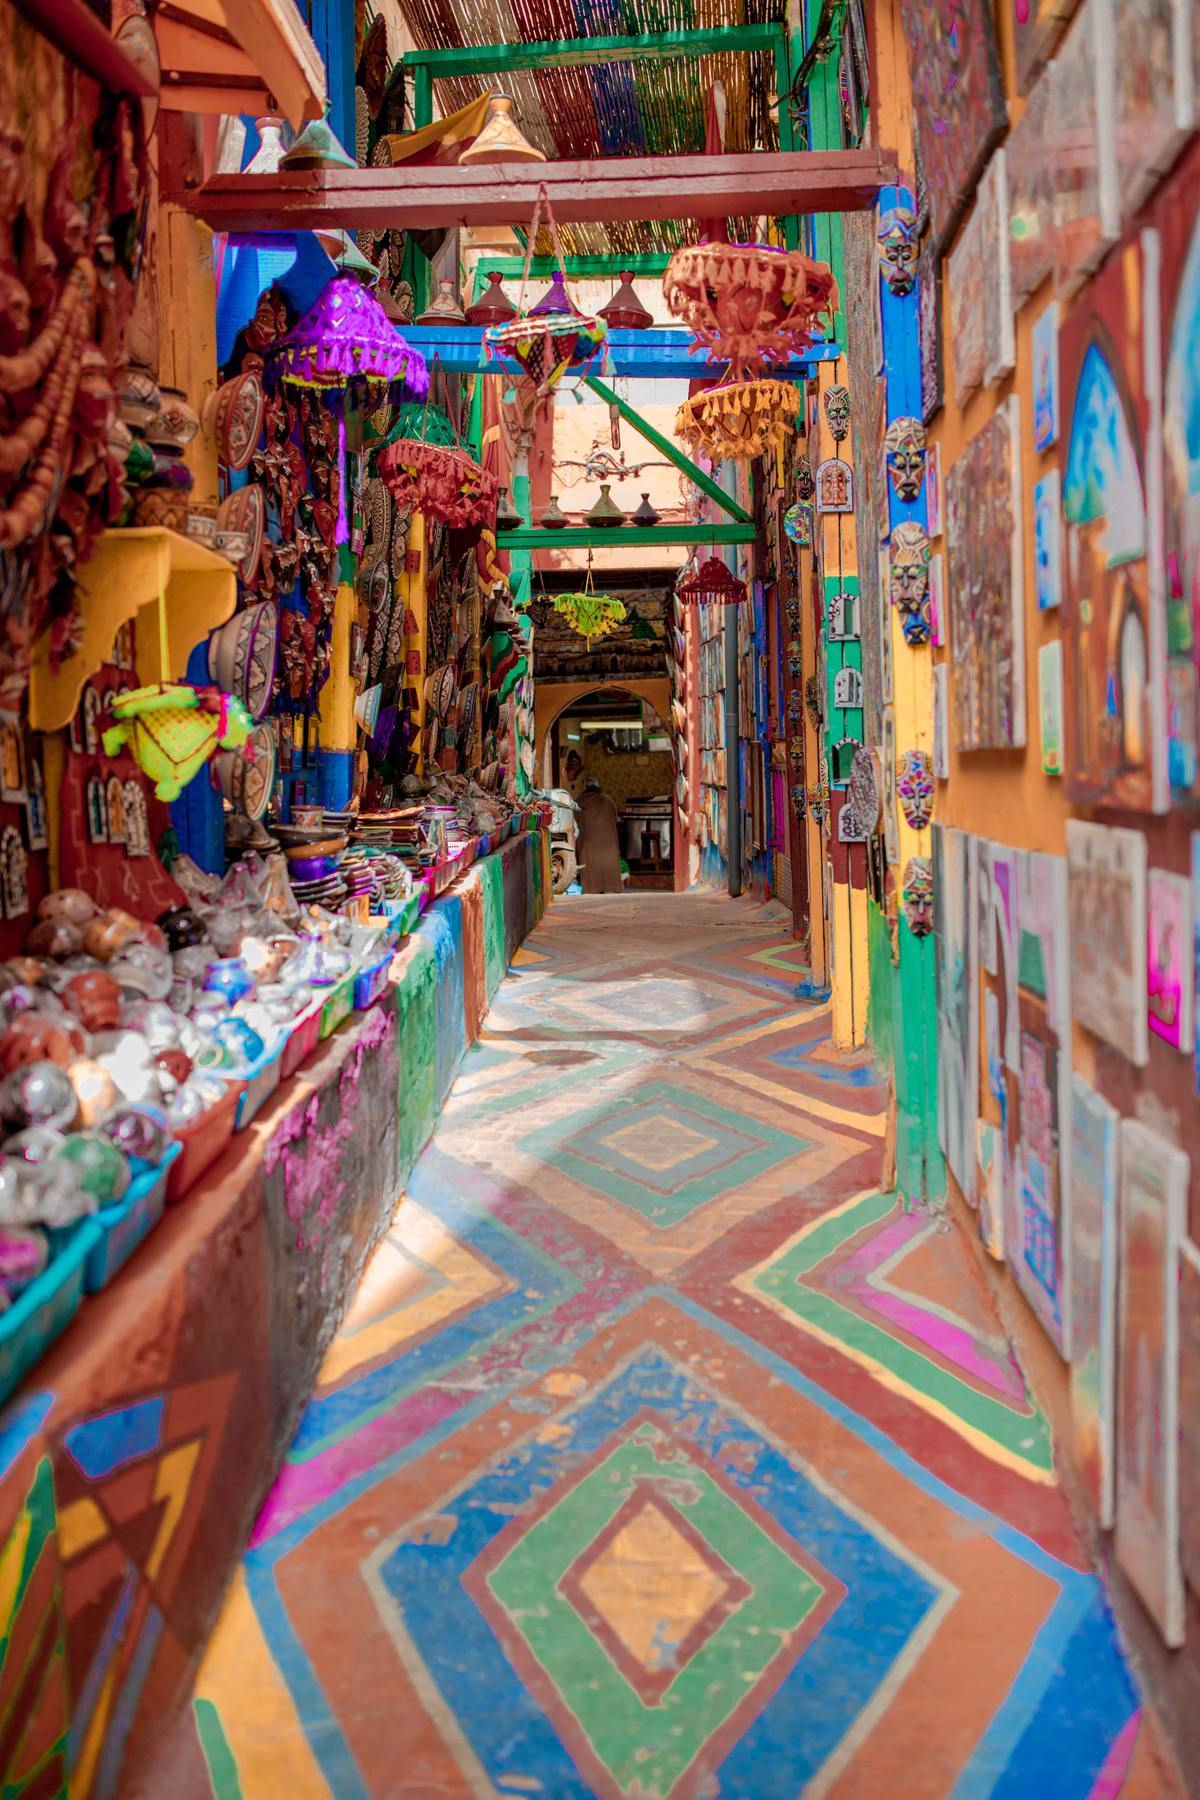 1-Top-things-to-do-in-Fez-Bucket-list-kelseyinlondon-Kelsey-Heinrichs--What-to-do-in-Fez--Where-to-go-in-Fez-top-places-in-Fez-rainbow-street-art